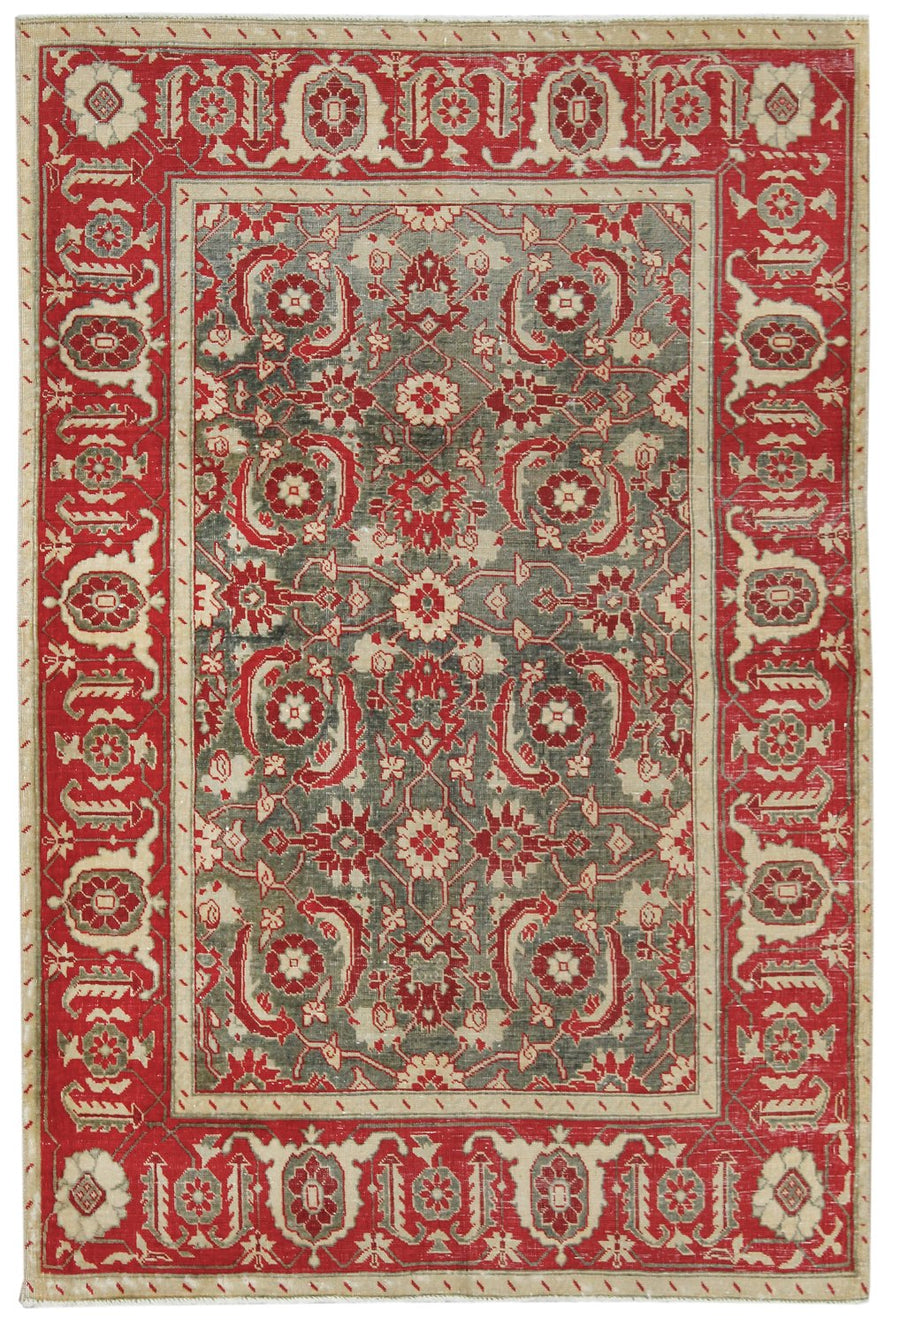 AGRA HANDKNOTTED RUG, J58725